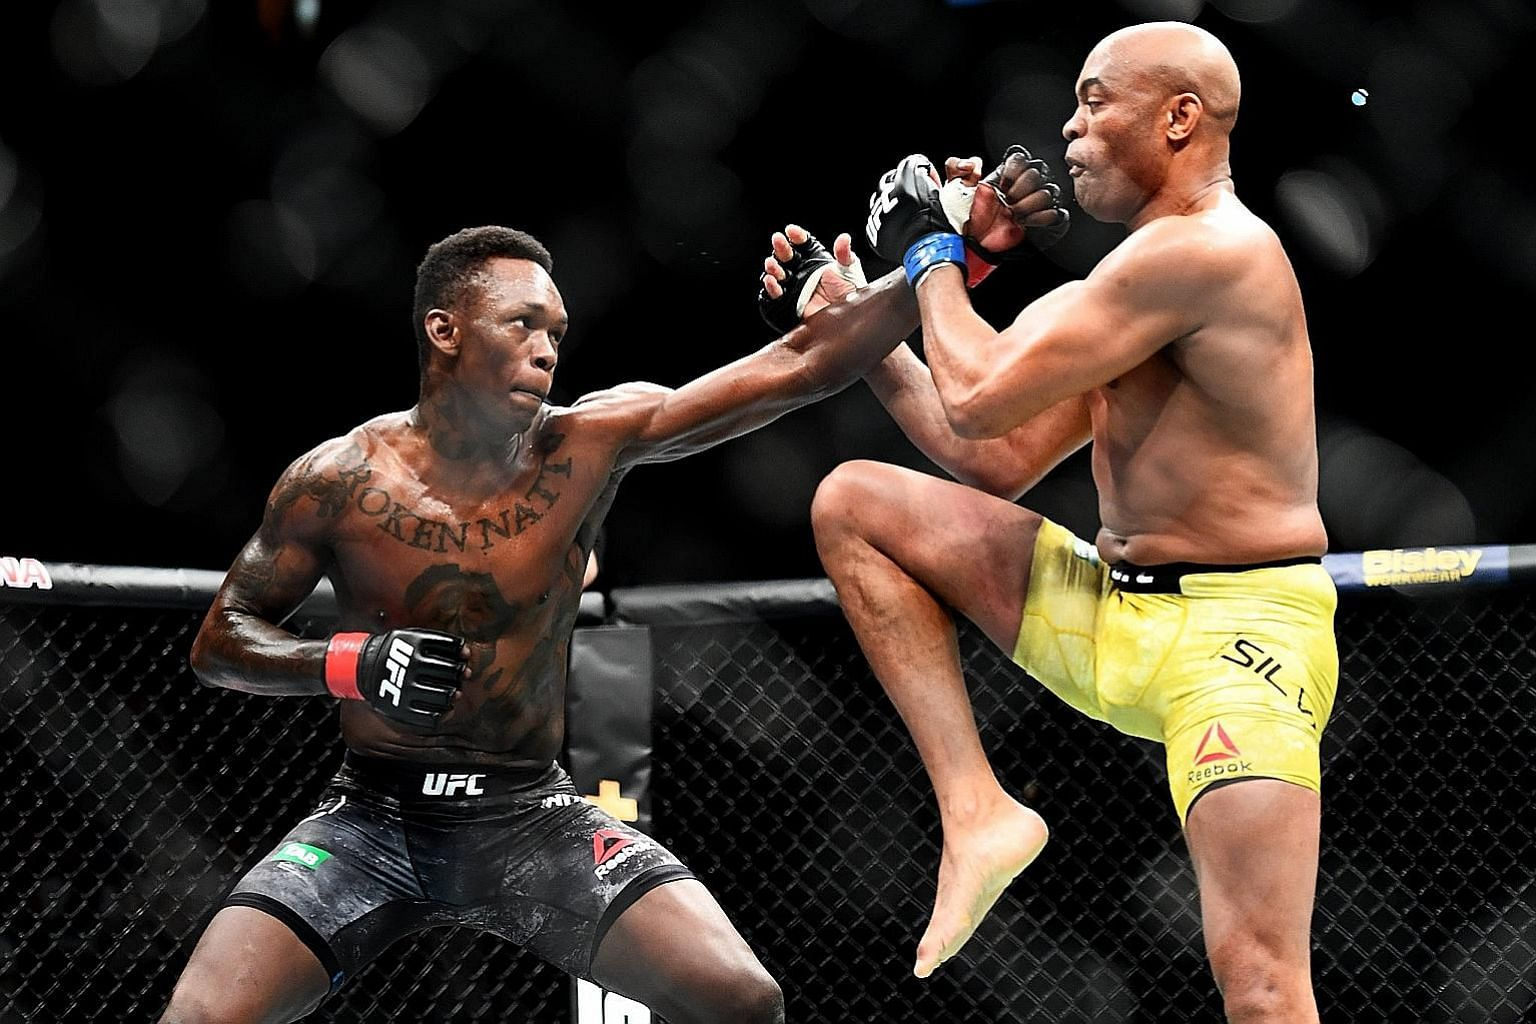 Israel Adesanya throwing a punch at Anderson Silva in their fight, which he won by unanimous decision.